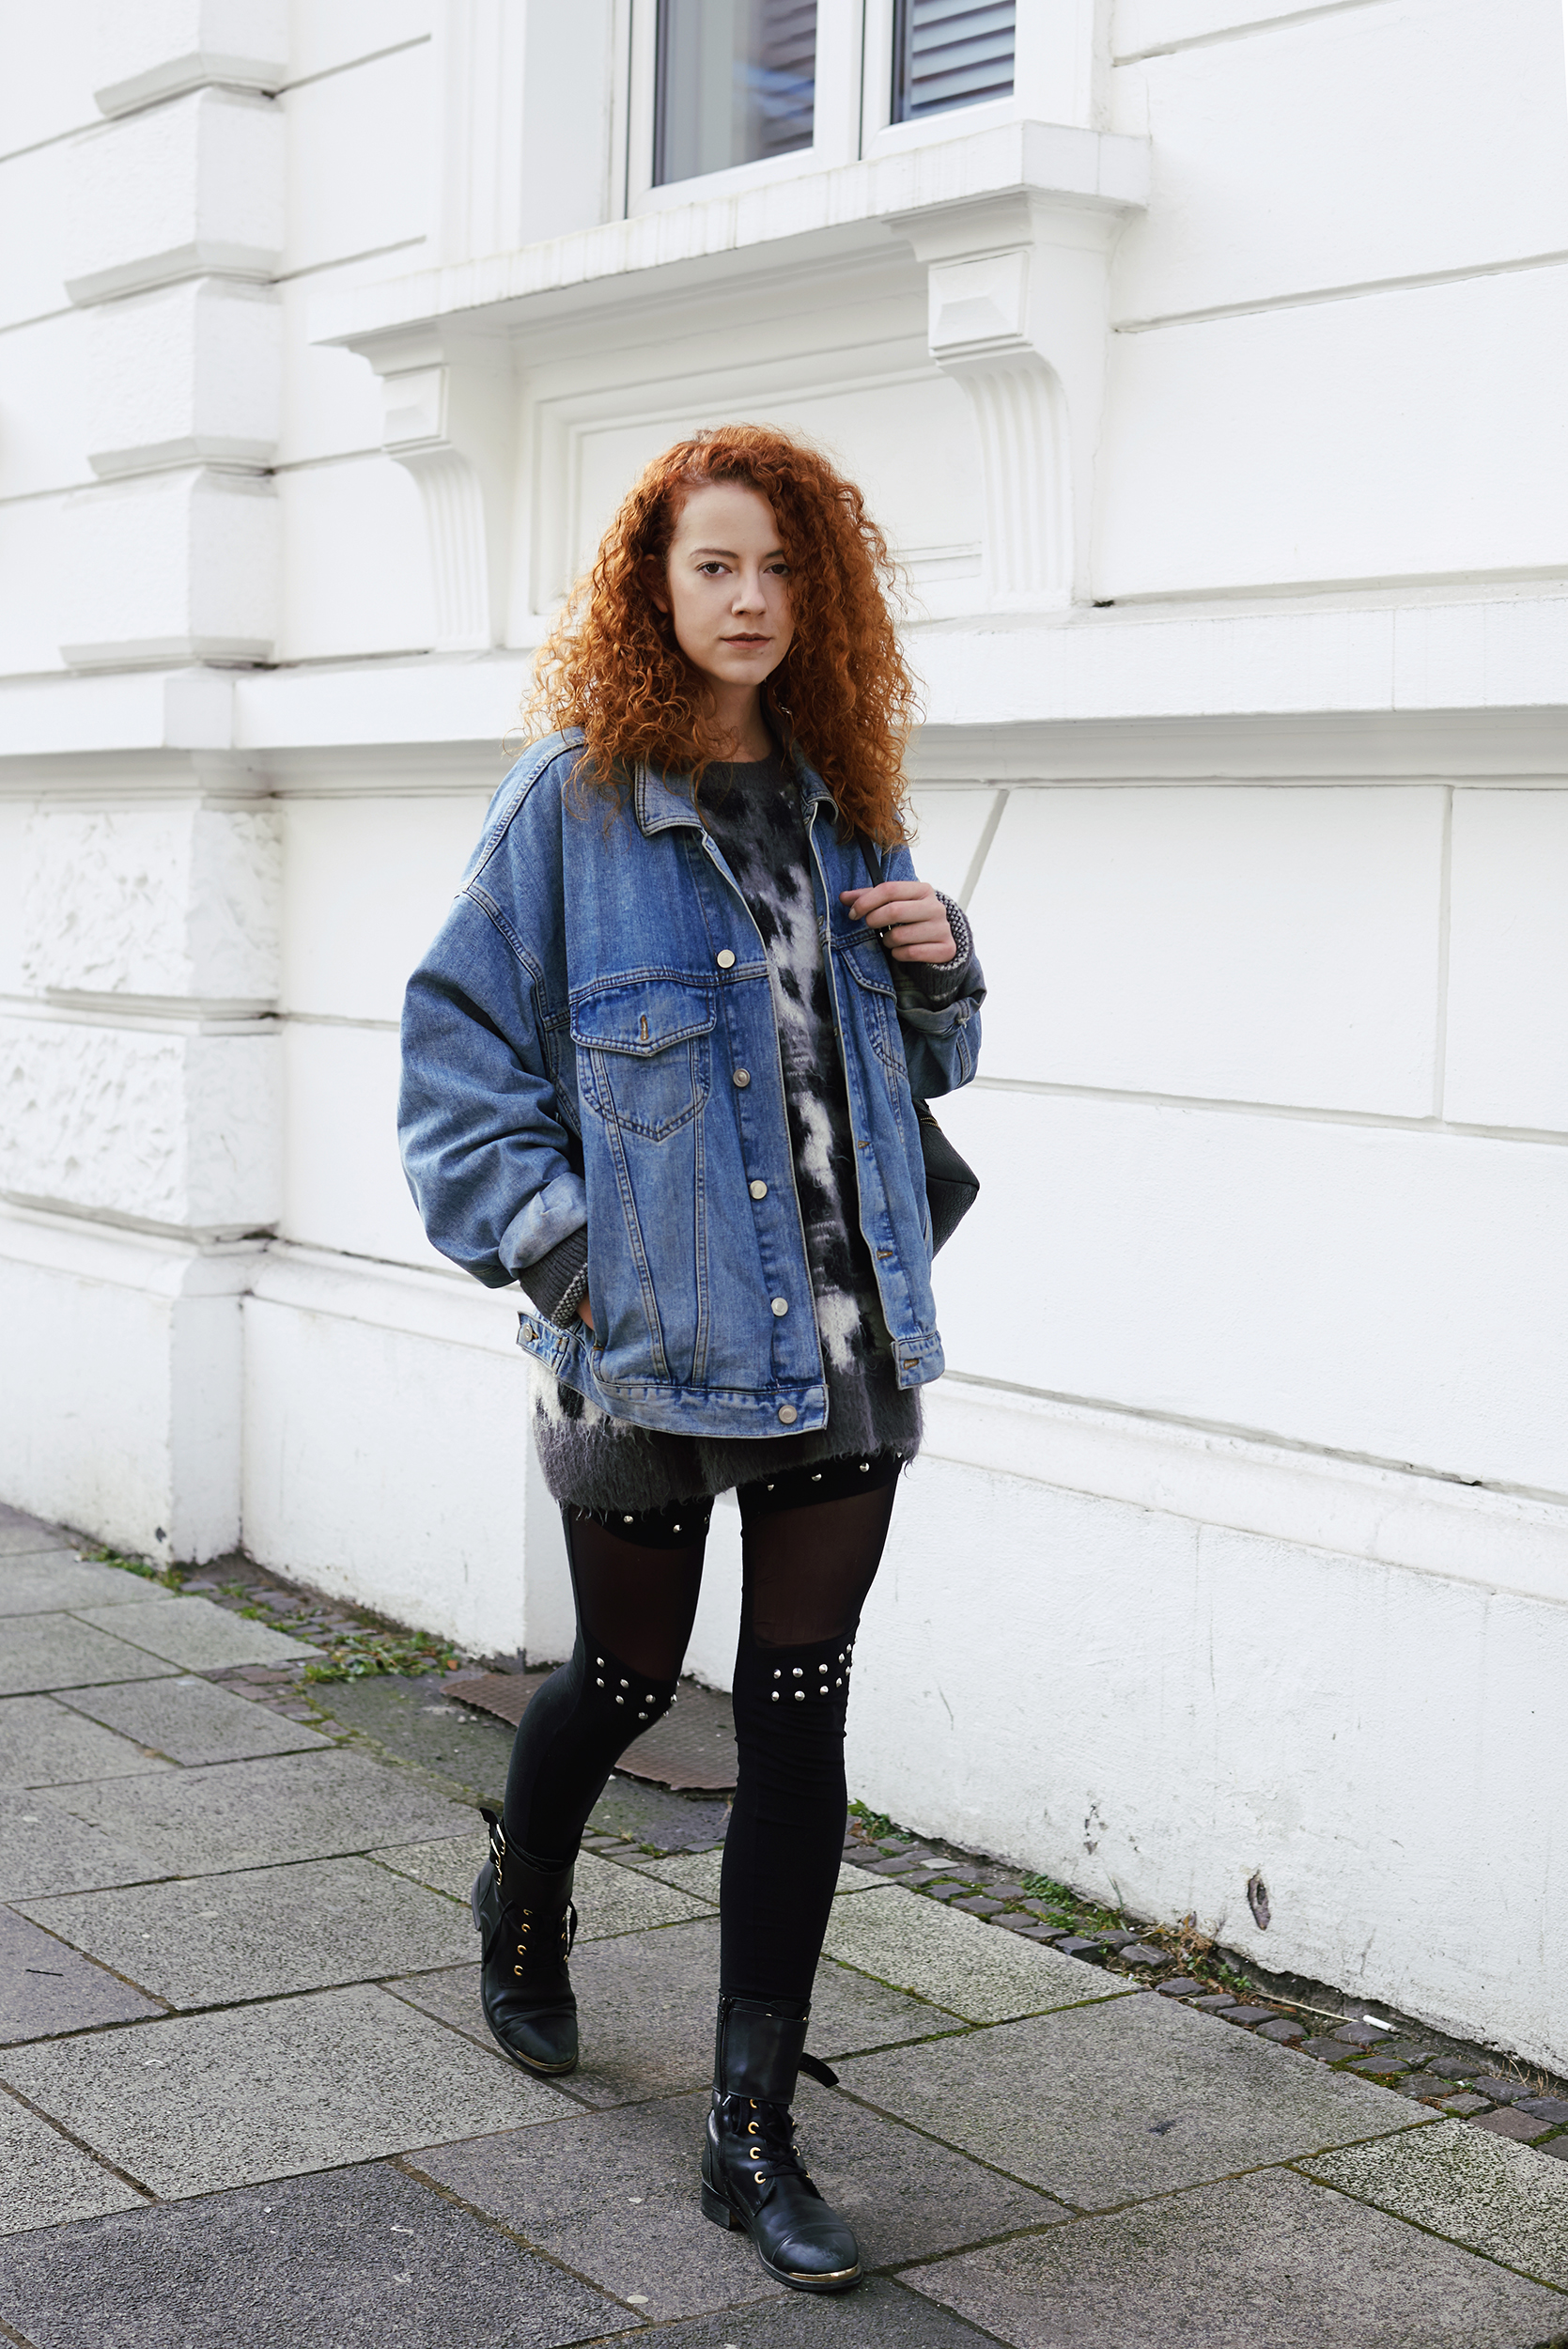 outfit fashionblogger modeblogger mode blog frankfurt berlin thecurledgirl the curled girl deliah alexandra denim jacket oversize calzedonia leggings pants edgy ootd streetstyle